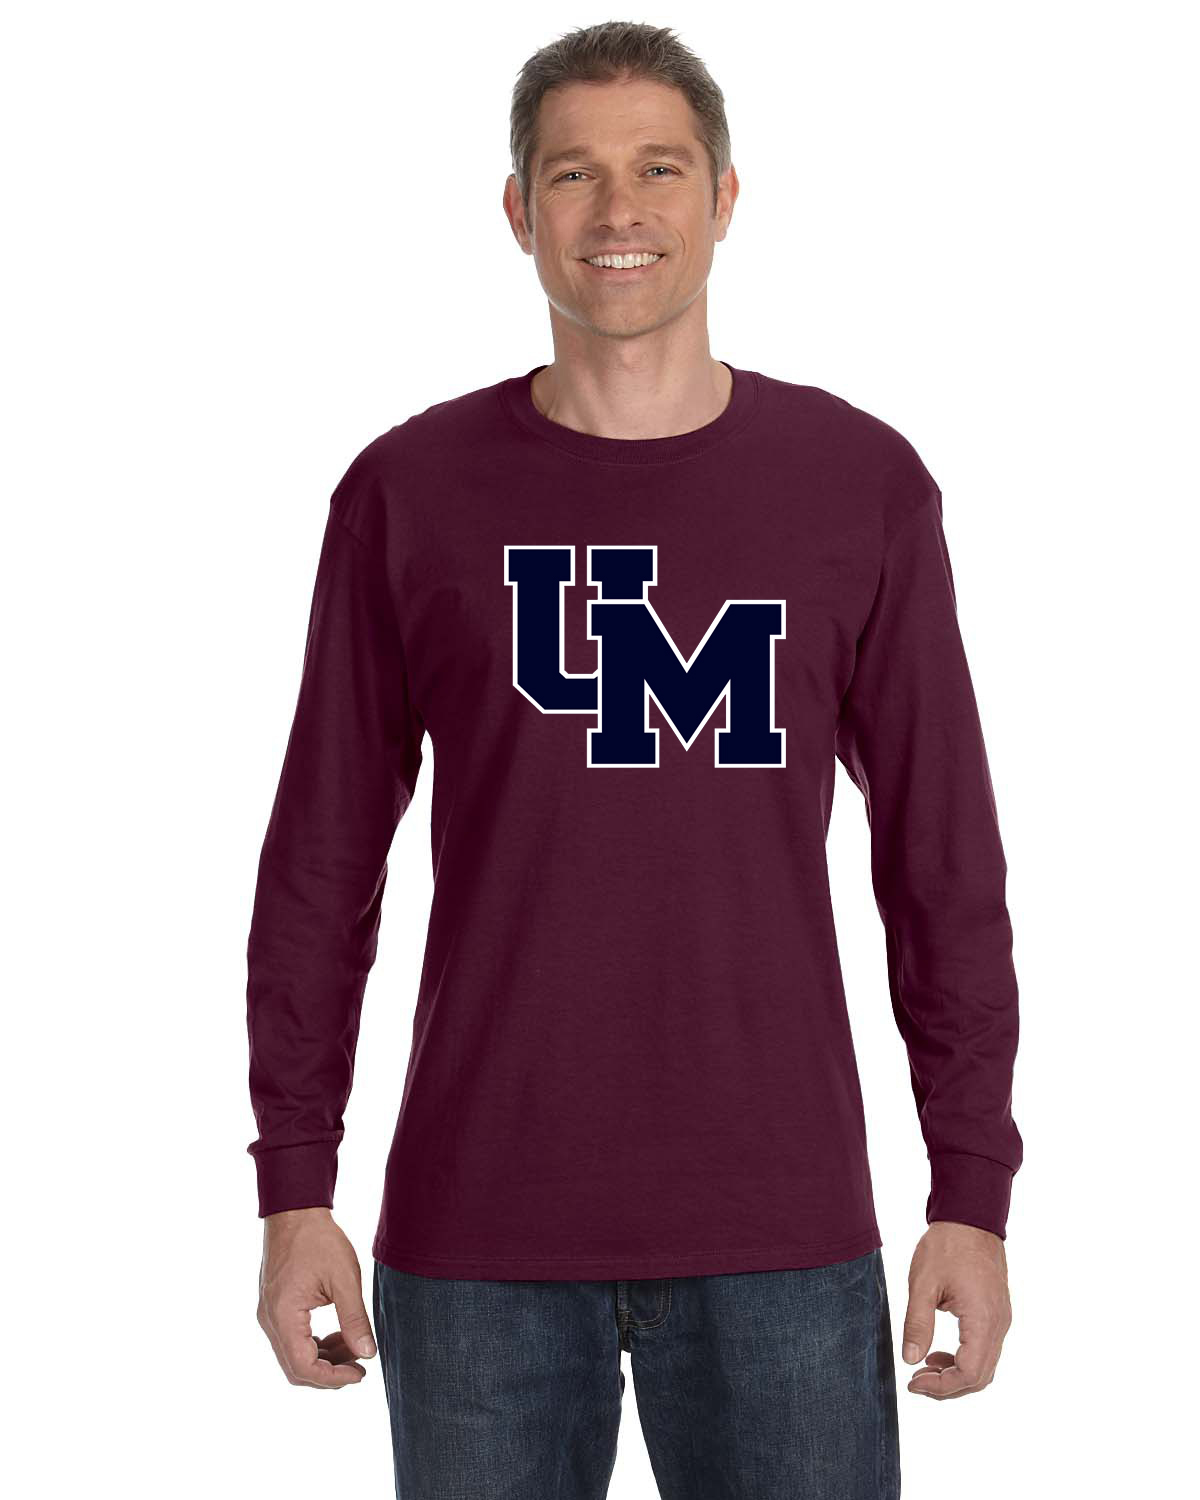 Long Sleeve Tee shown in Burgundy with Two-Tone Block UM